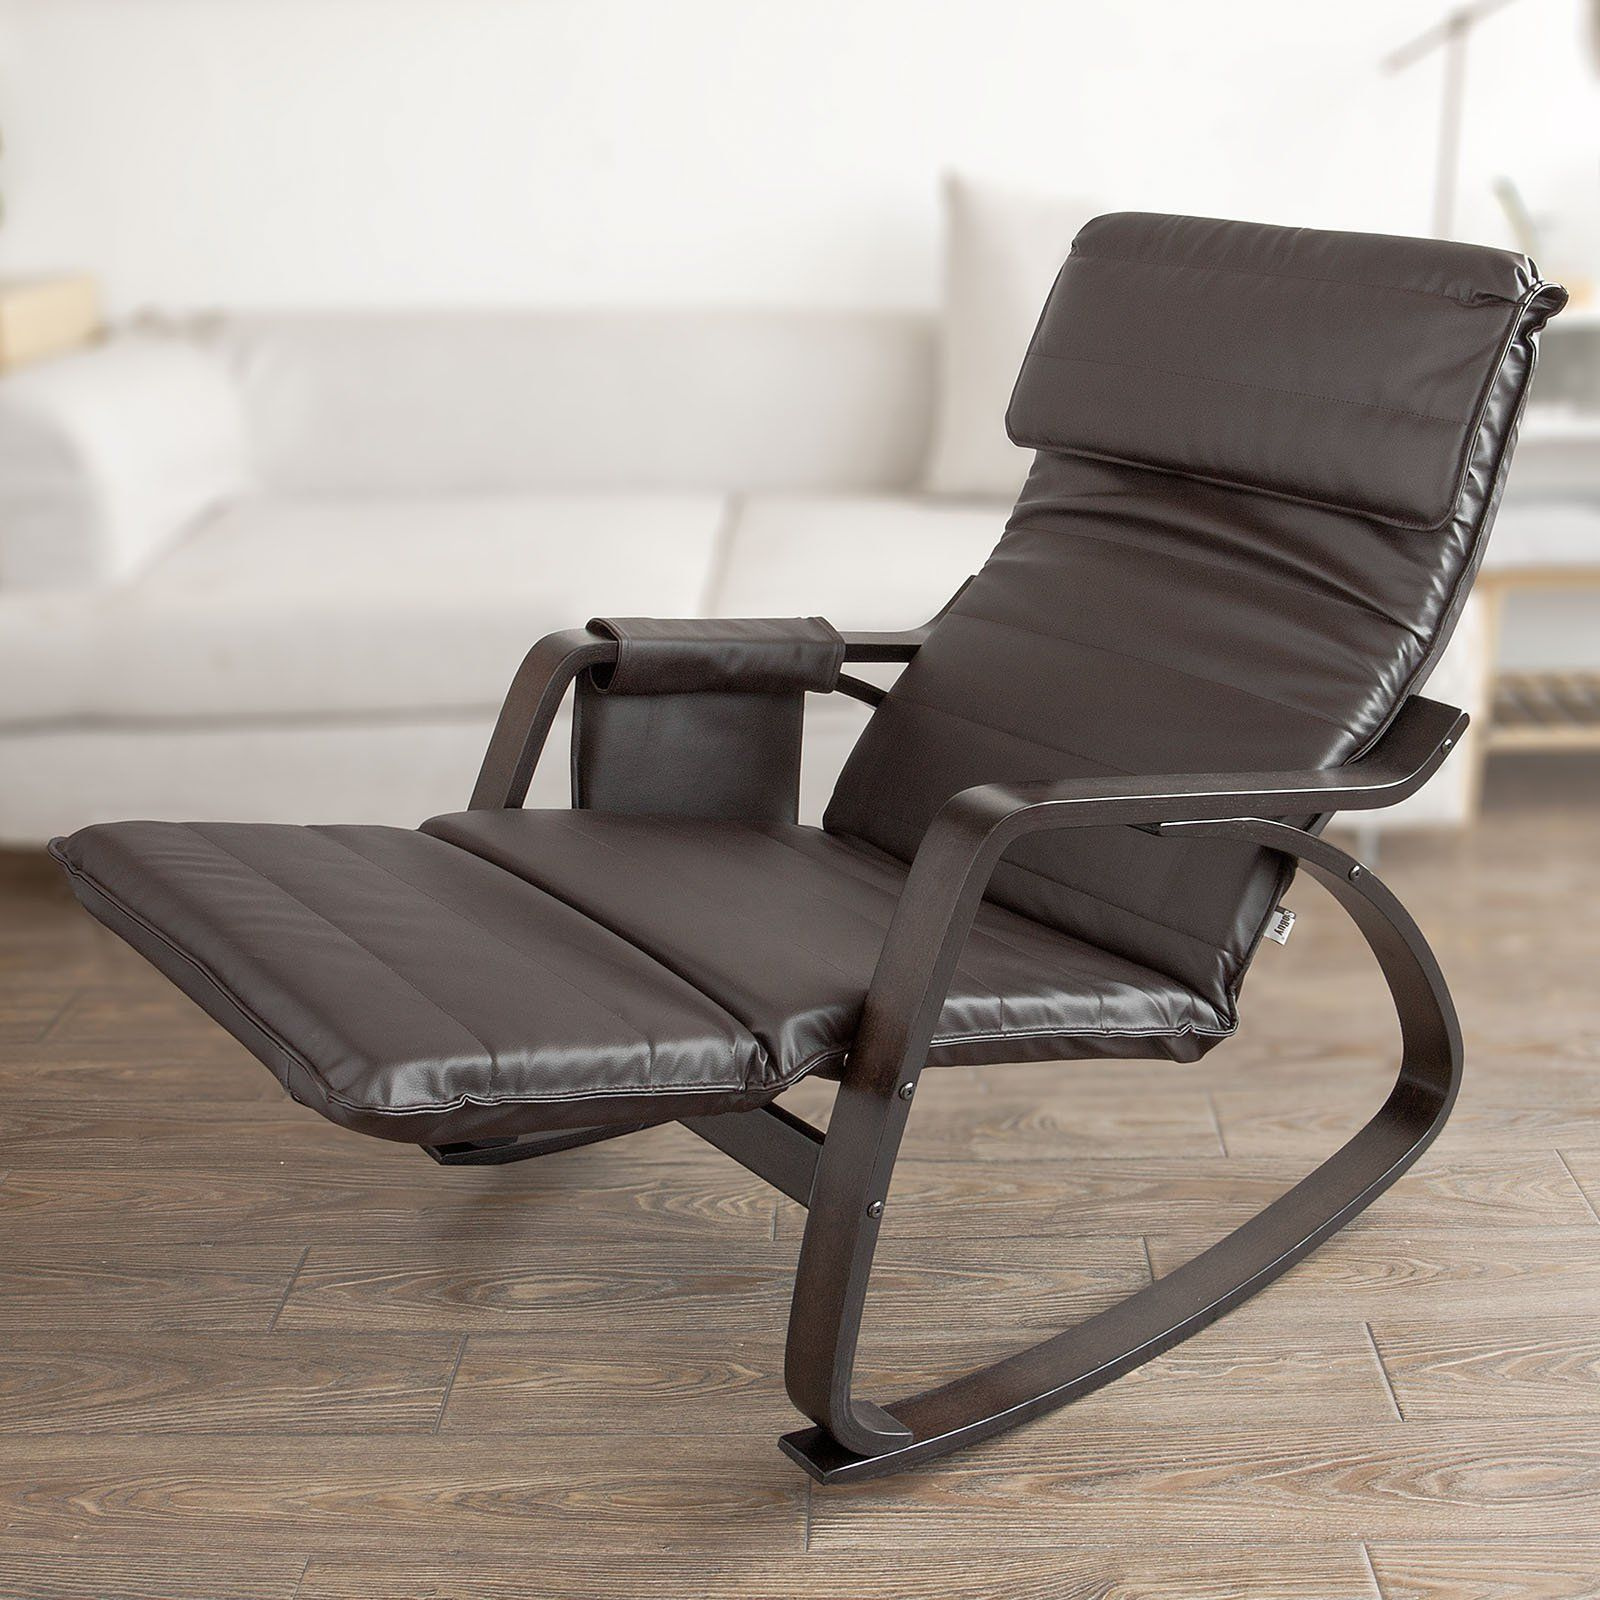 rocking chair footrest dinning table chairs sobuy comfortable relax gliderslounge recliners with adjustable hashtag